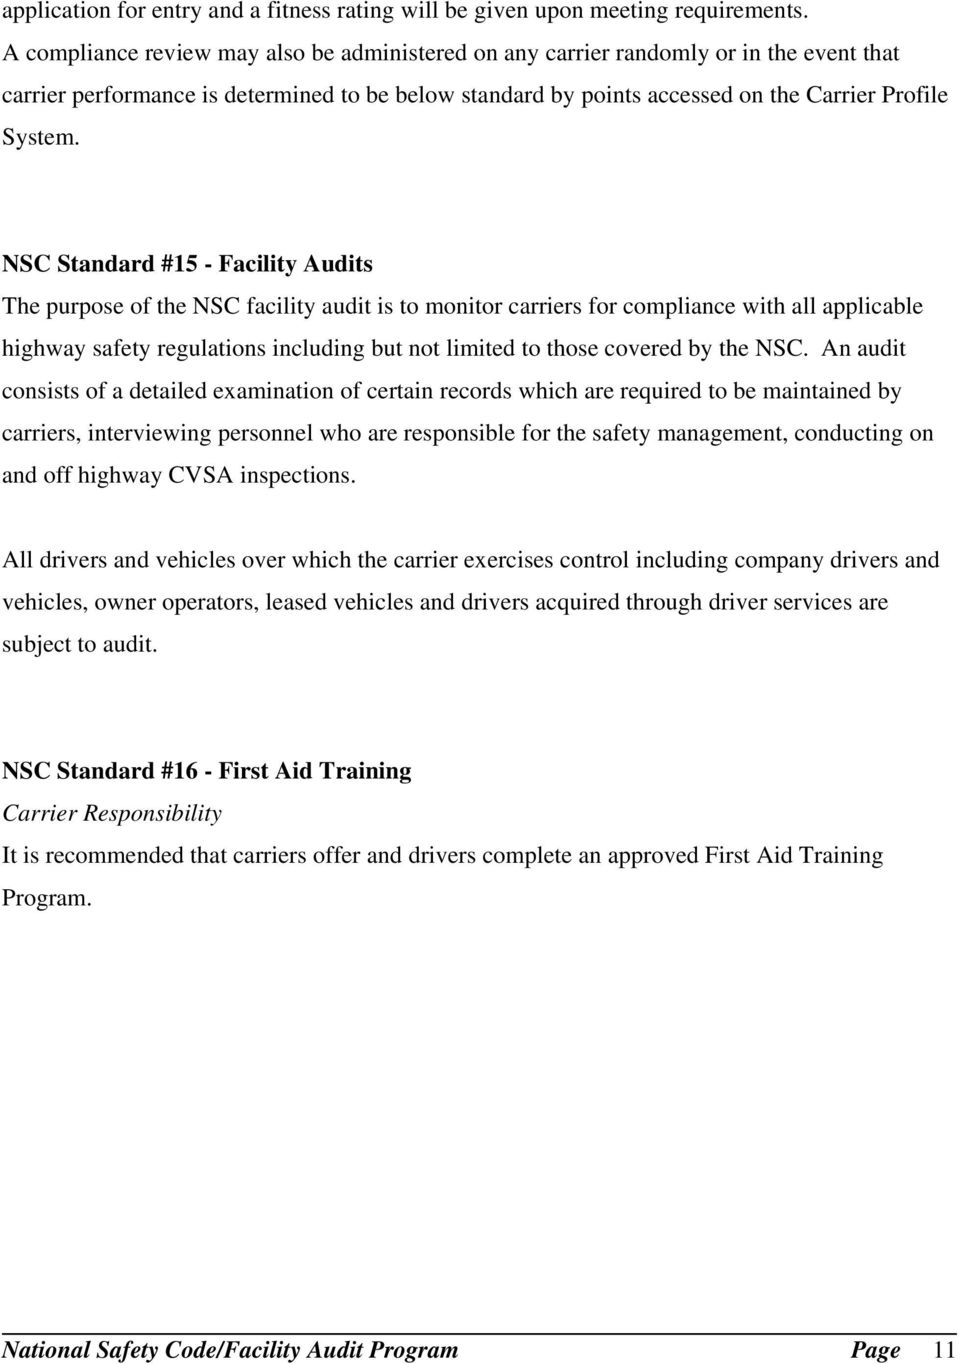 NSC Standard #15 - Facility Audits The purpose of the NSC facility audit is to monitor carriers for compliance with all applicable highway safety regulations including but not limited to those